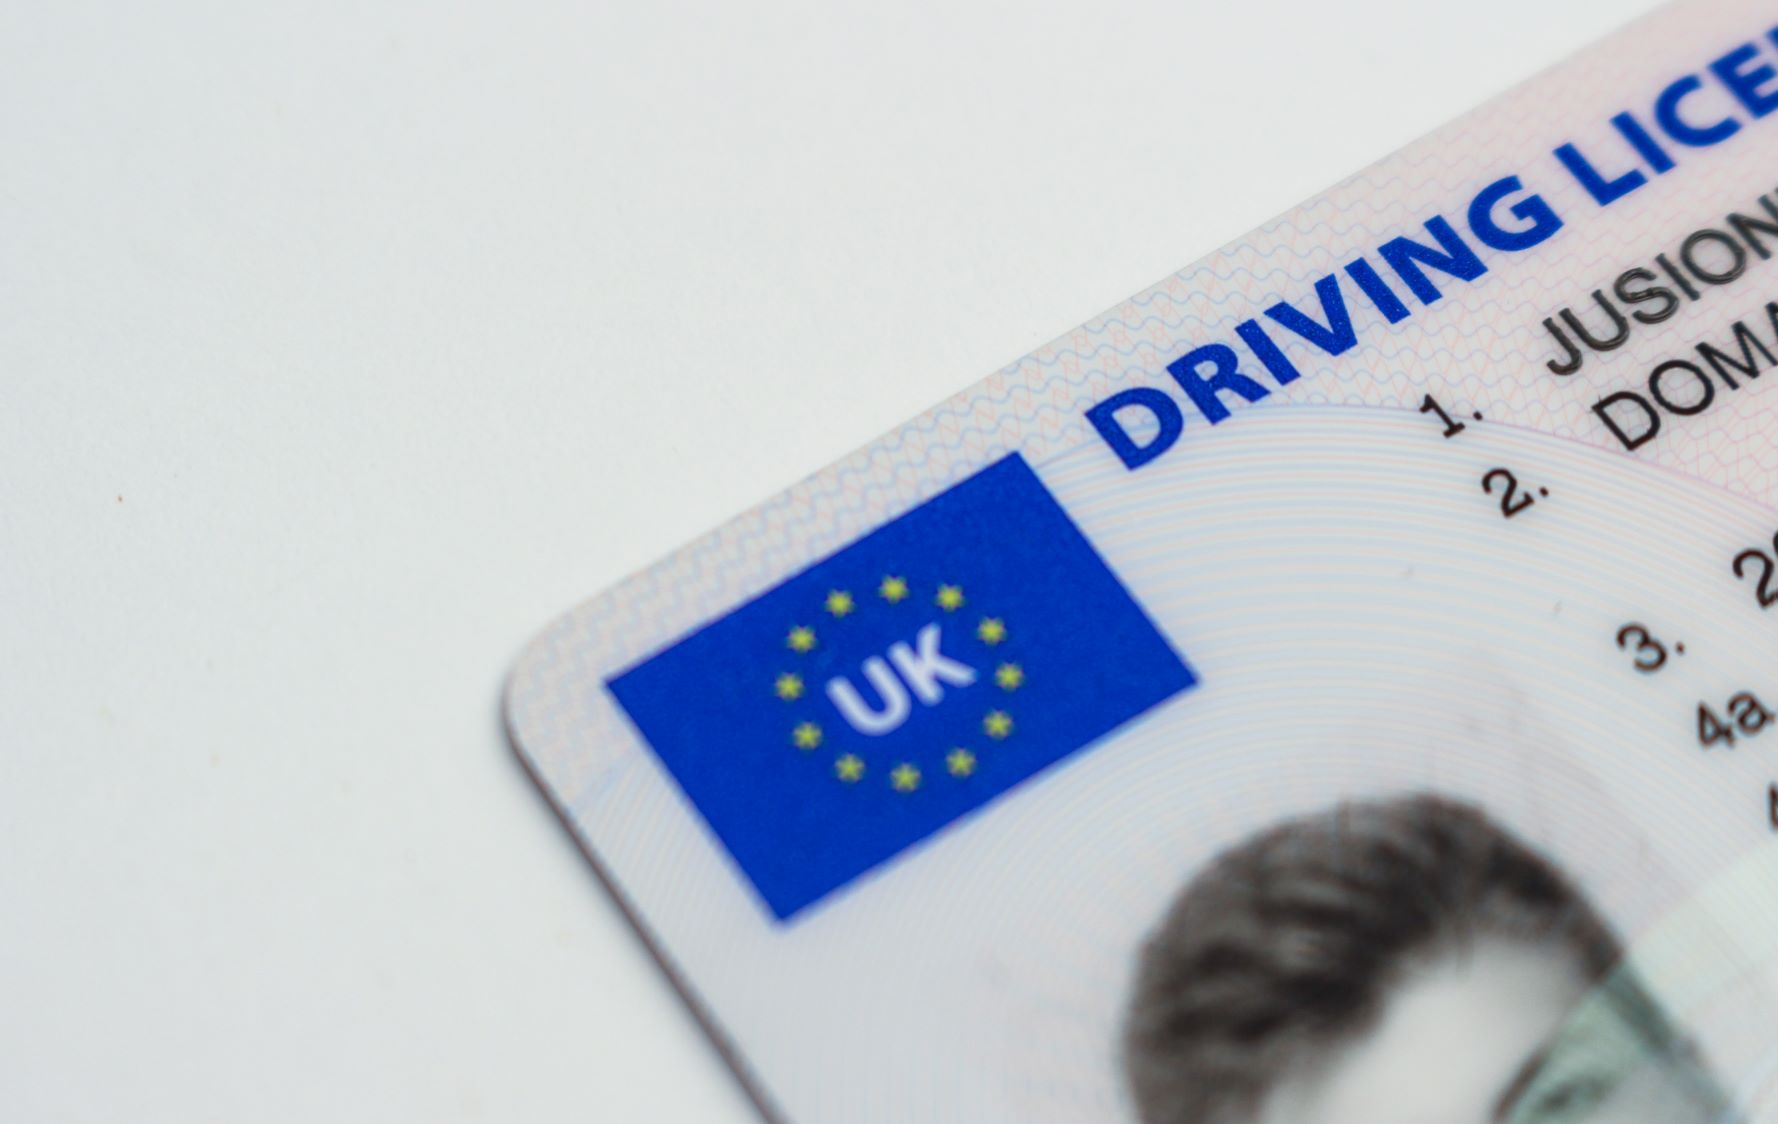 UK driving licences in Spain after 29 March 2019